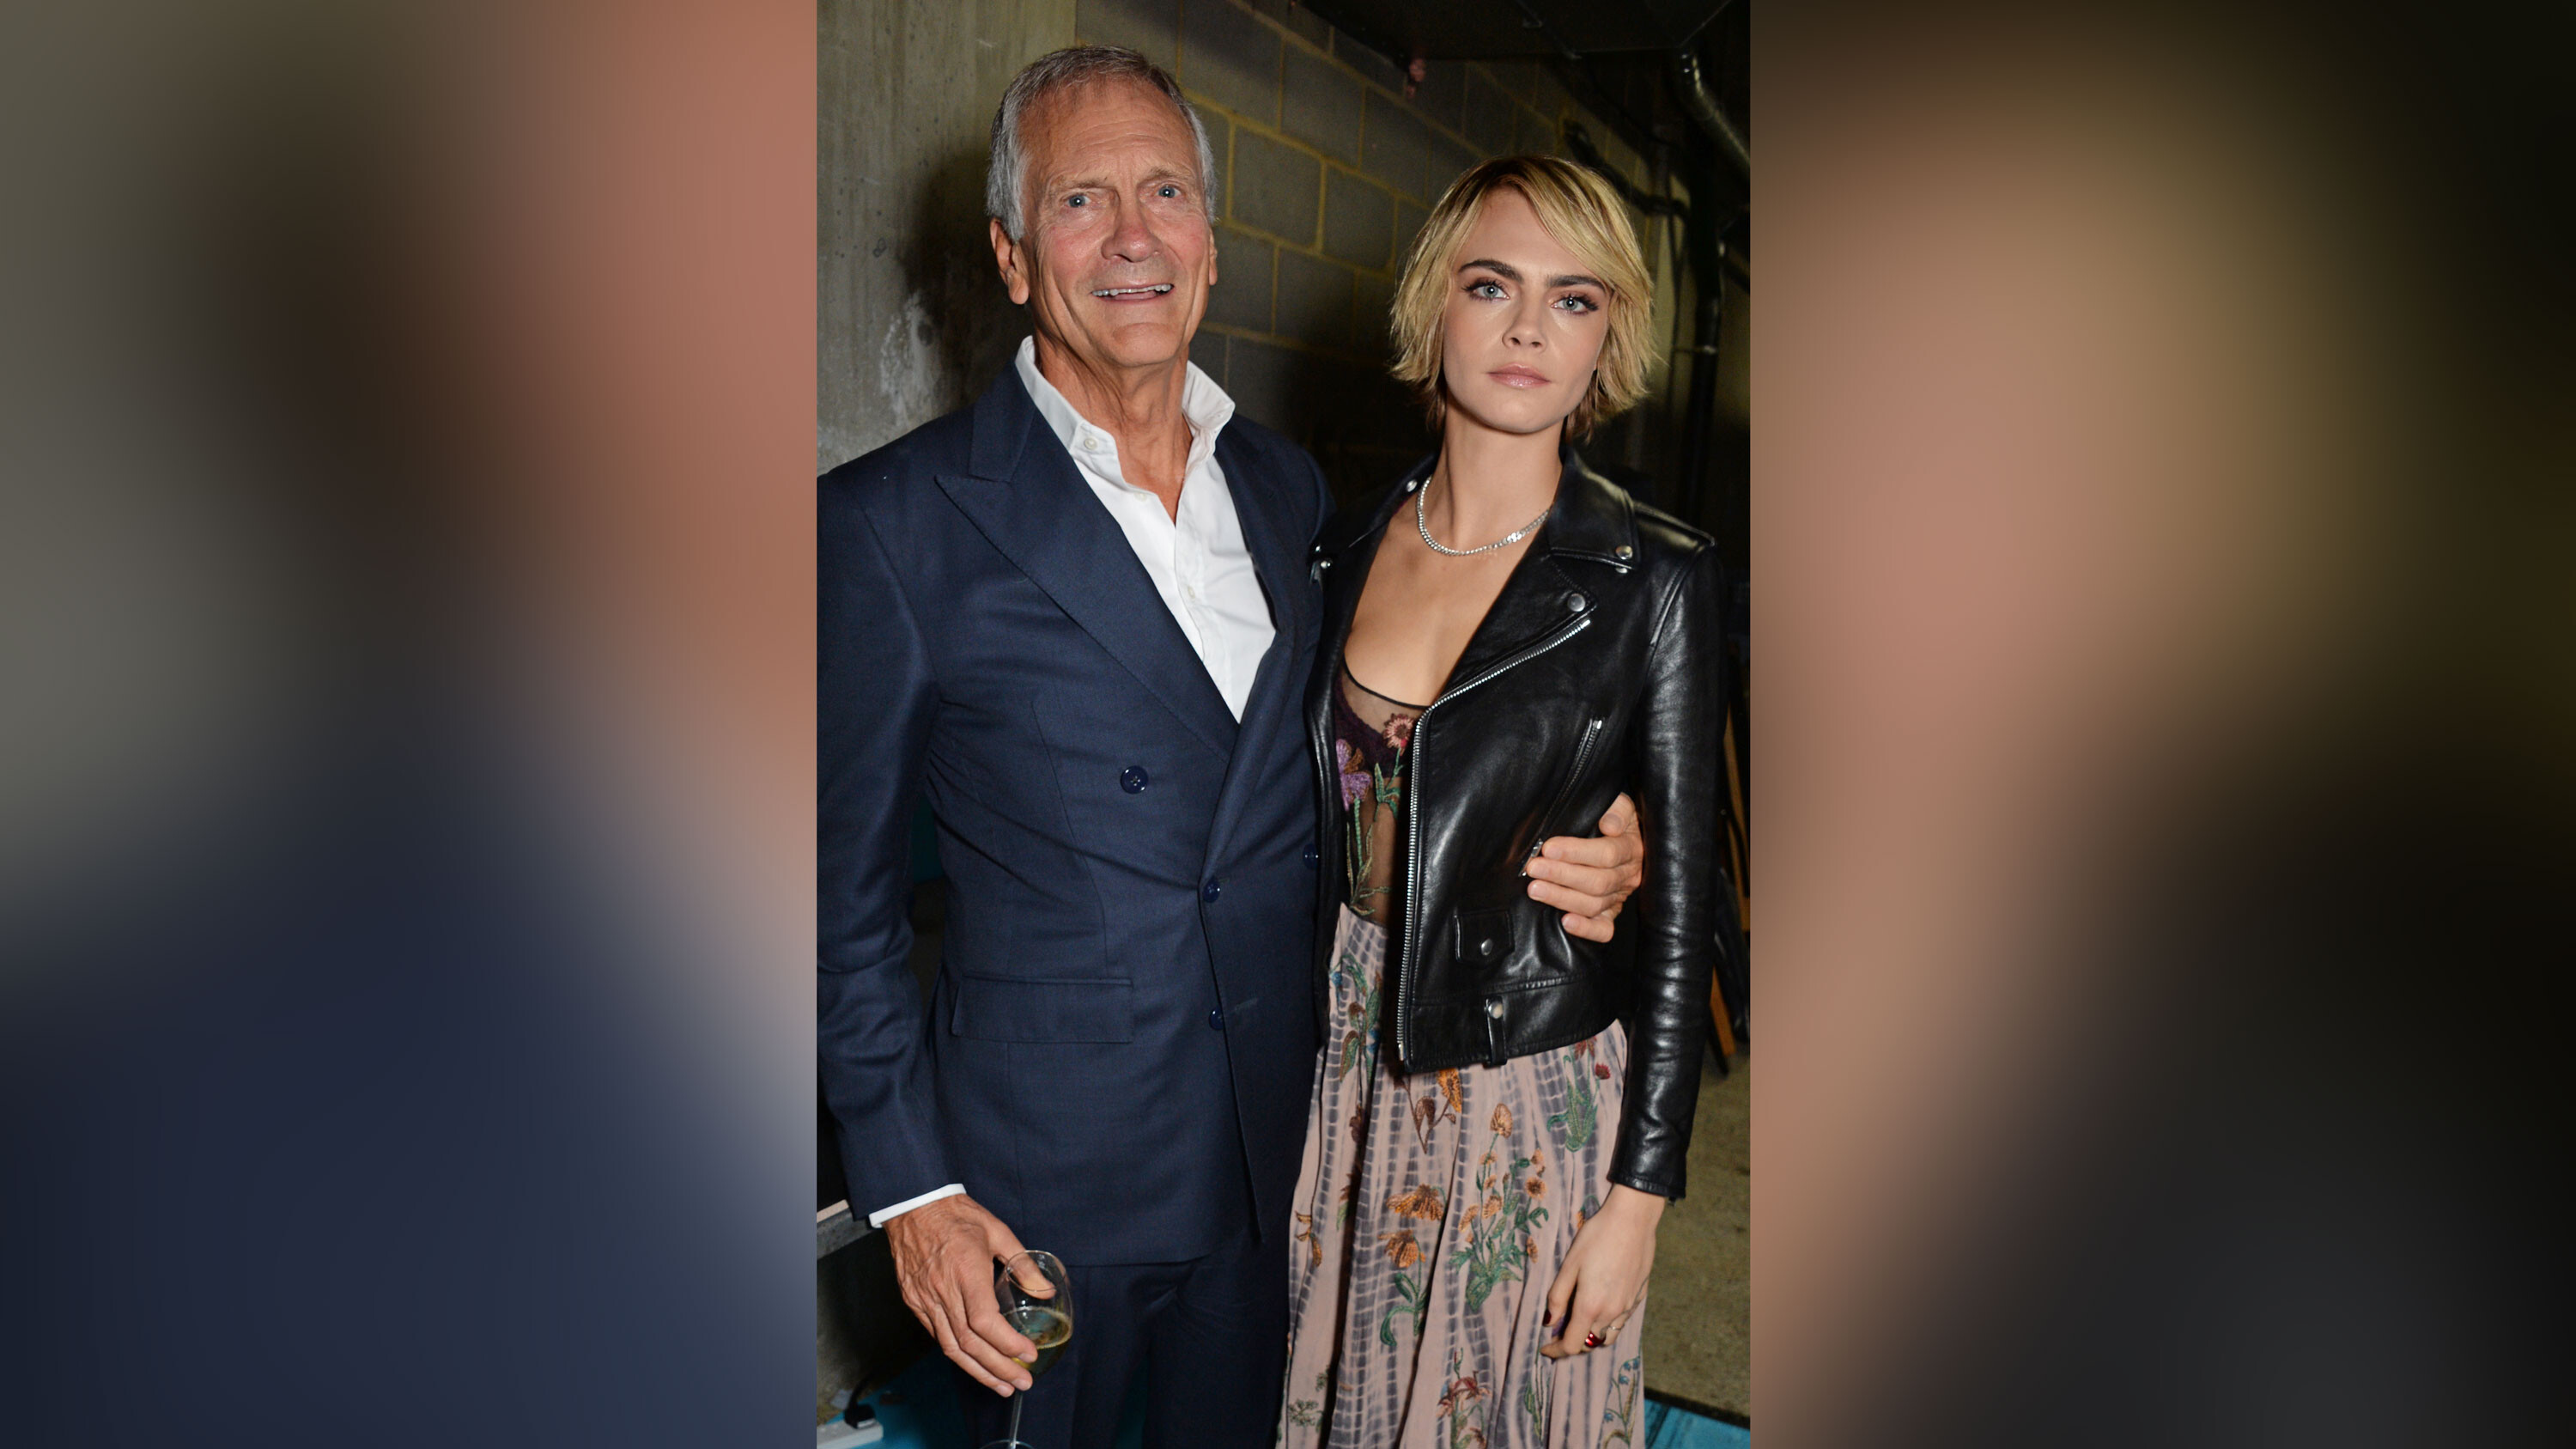 Cara Delevingne's father suggests she was named after in-flight magazine